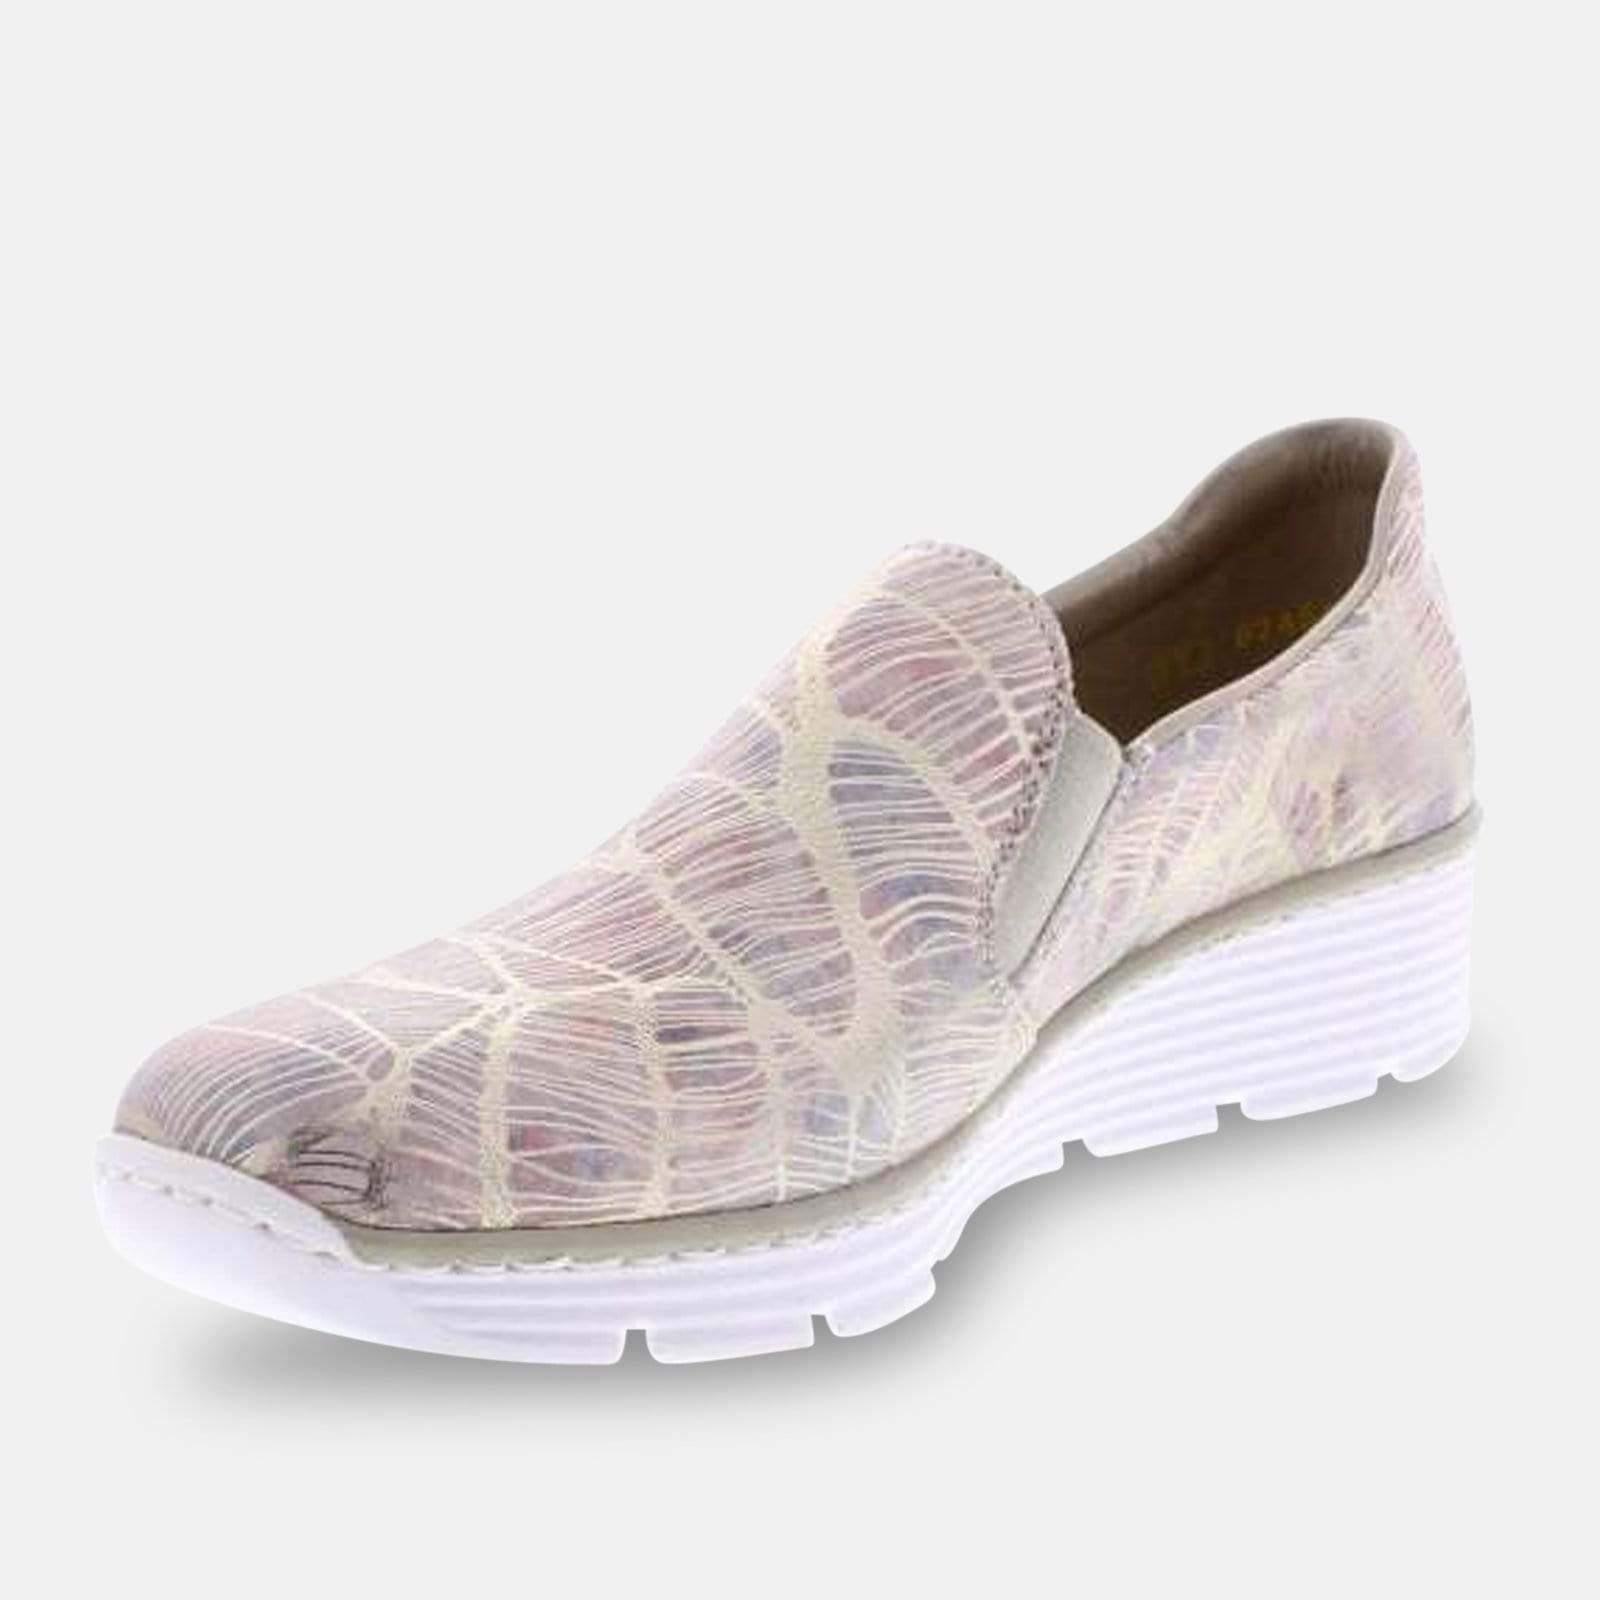 Rieker Footwear 58766 - 92 Multi